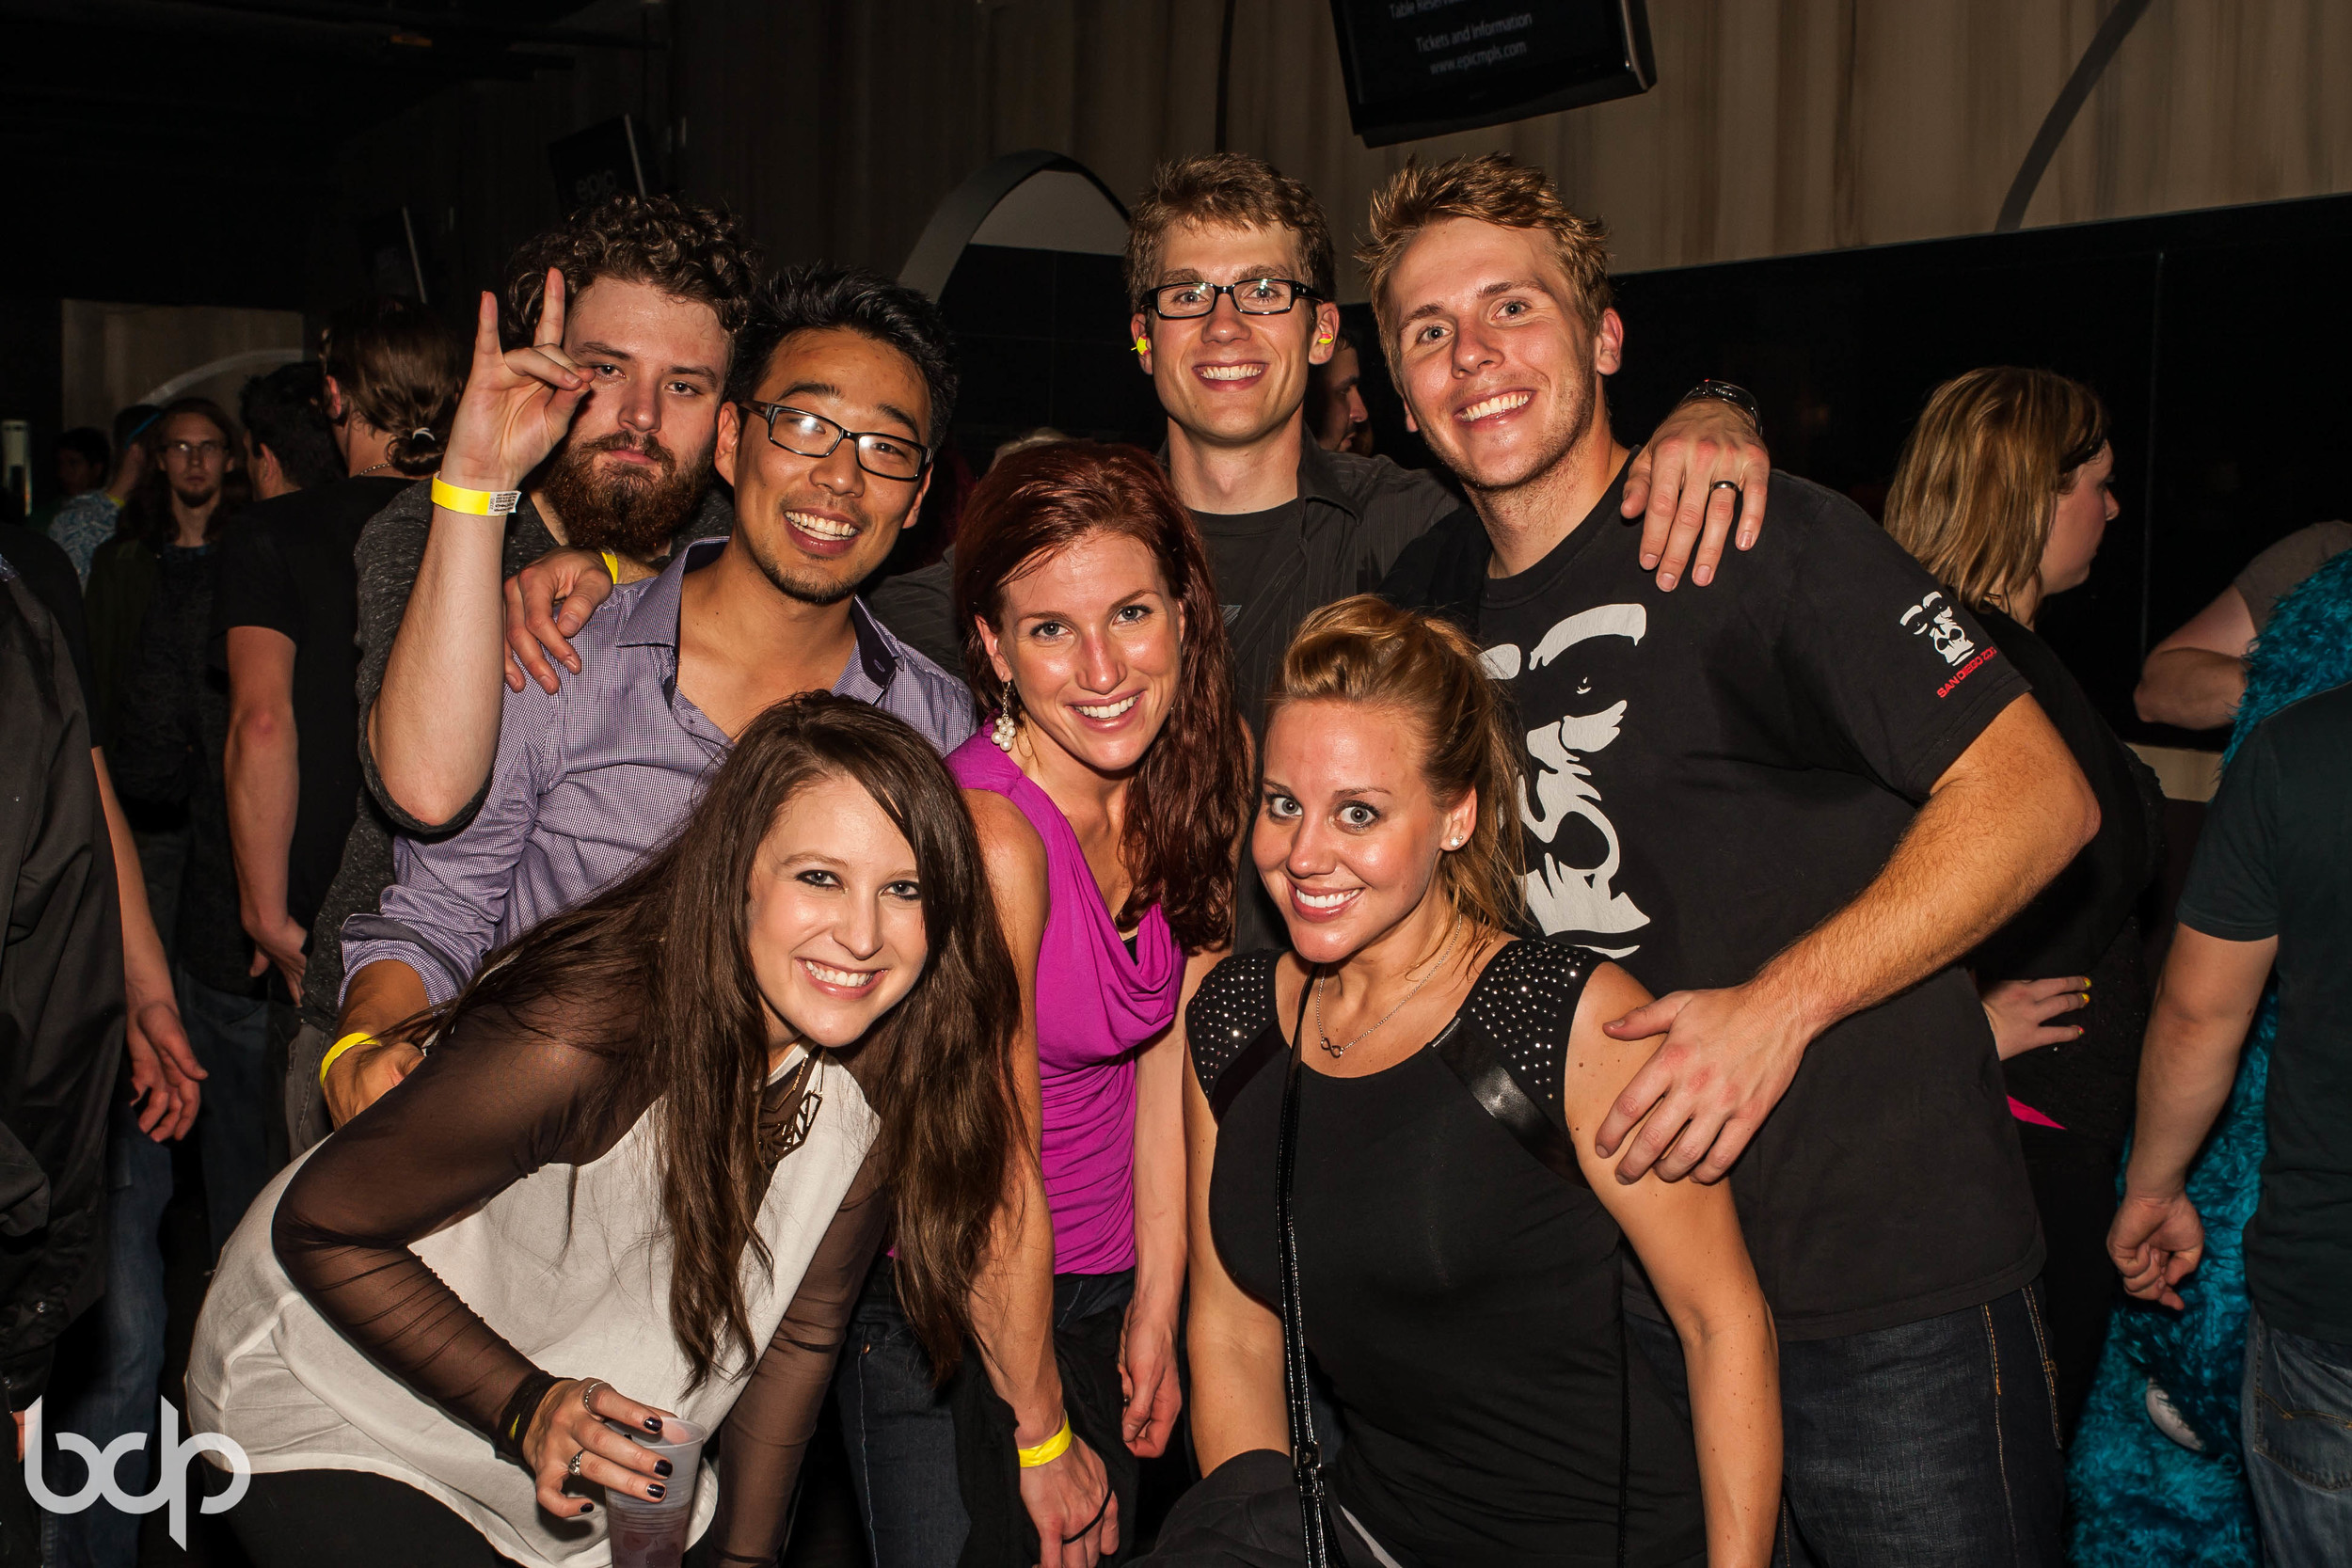 Aokify America Tour at Epic at Epic 110913 BDP-109.jpg